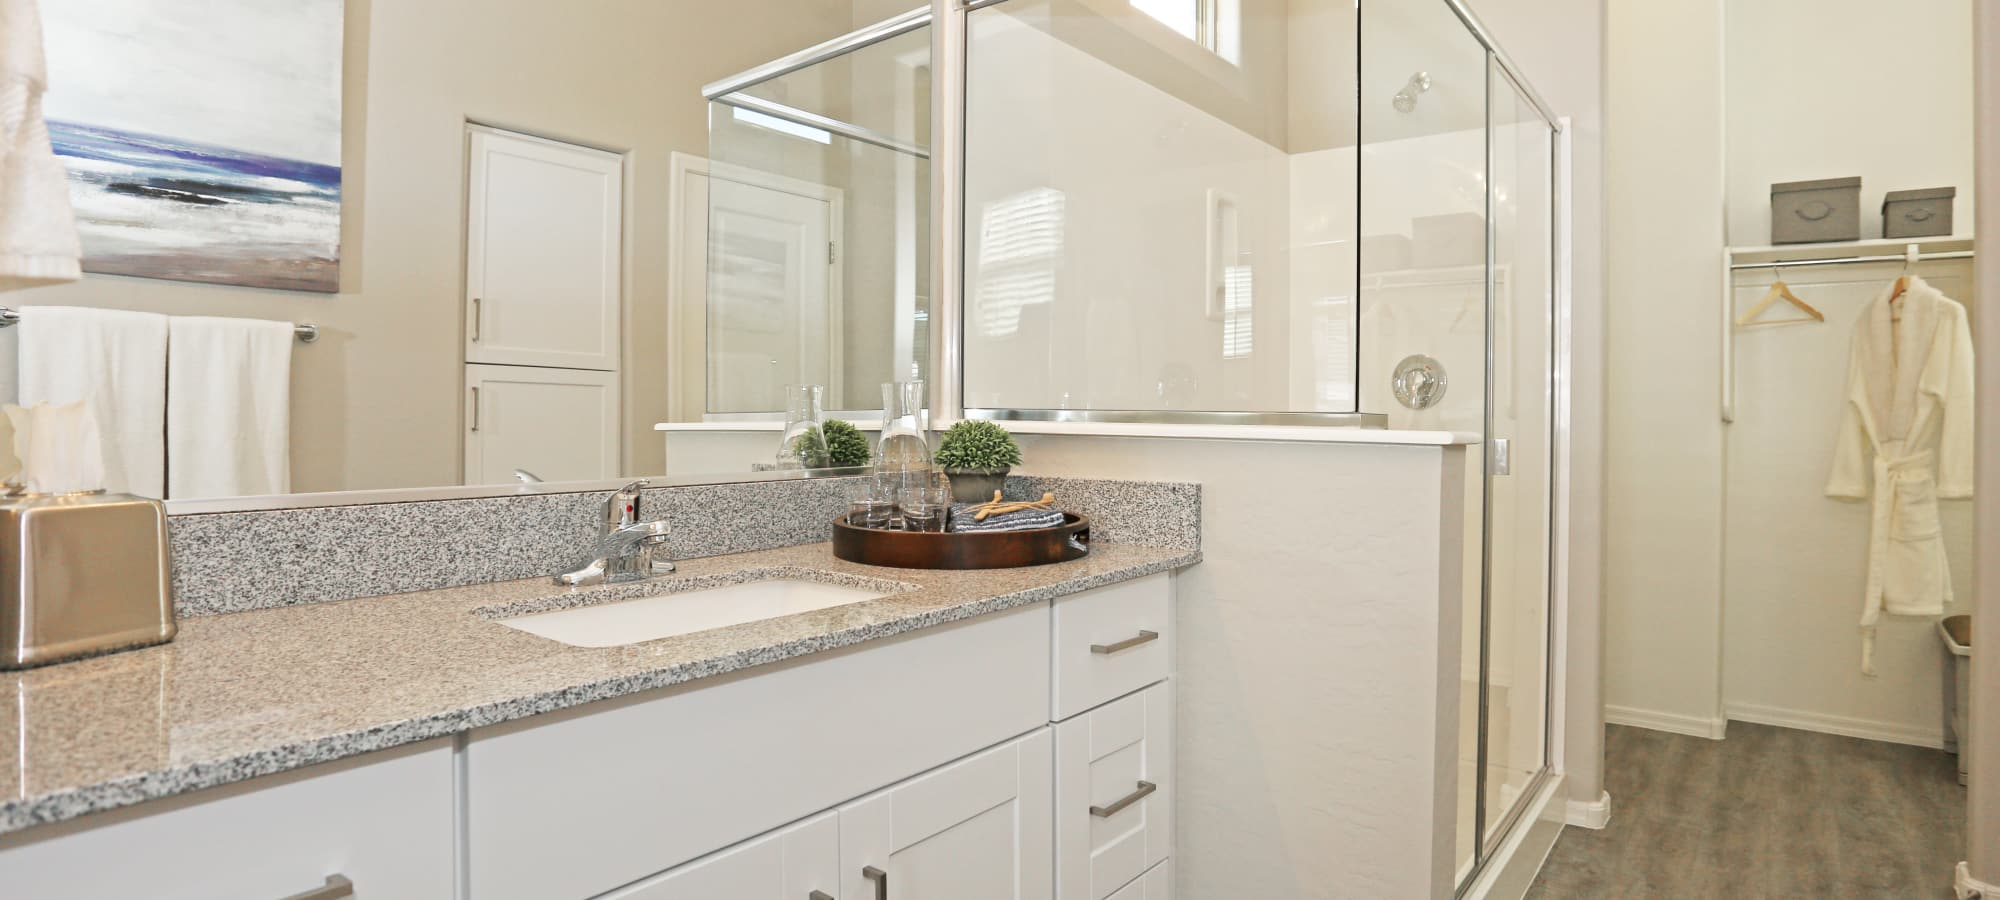 Granite countertop in bathroom of model home at Christopher Todd Communities On Camelback in Litchfield Park, Arizona